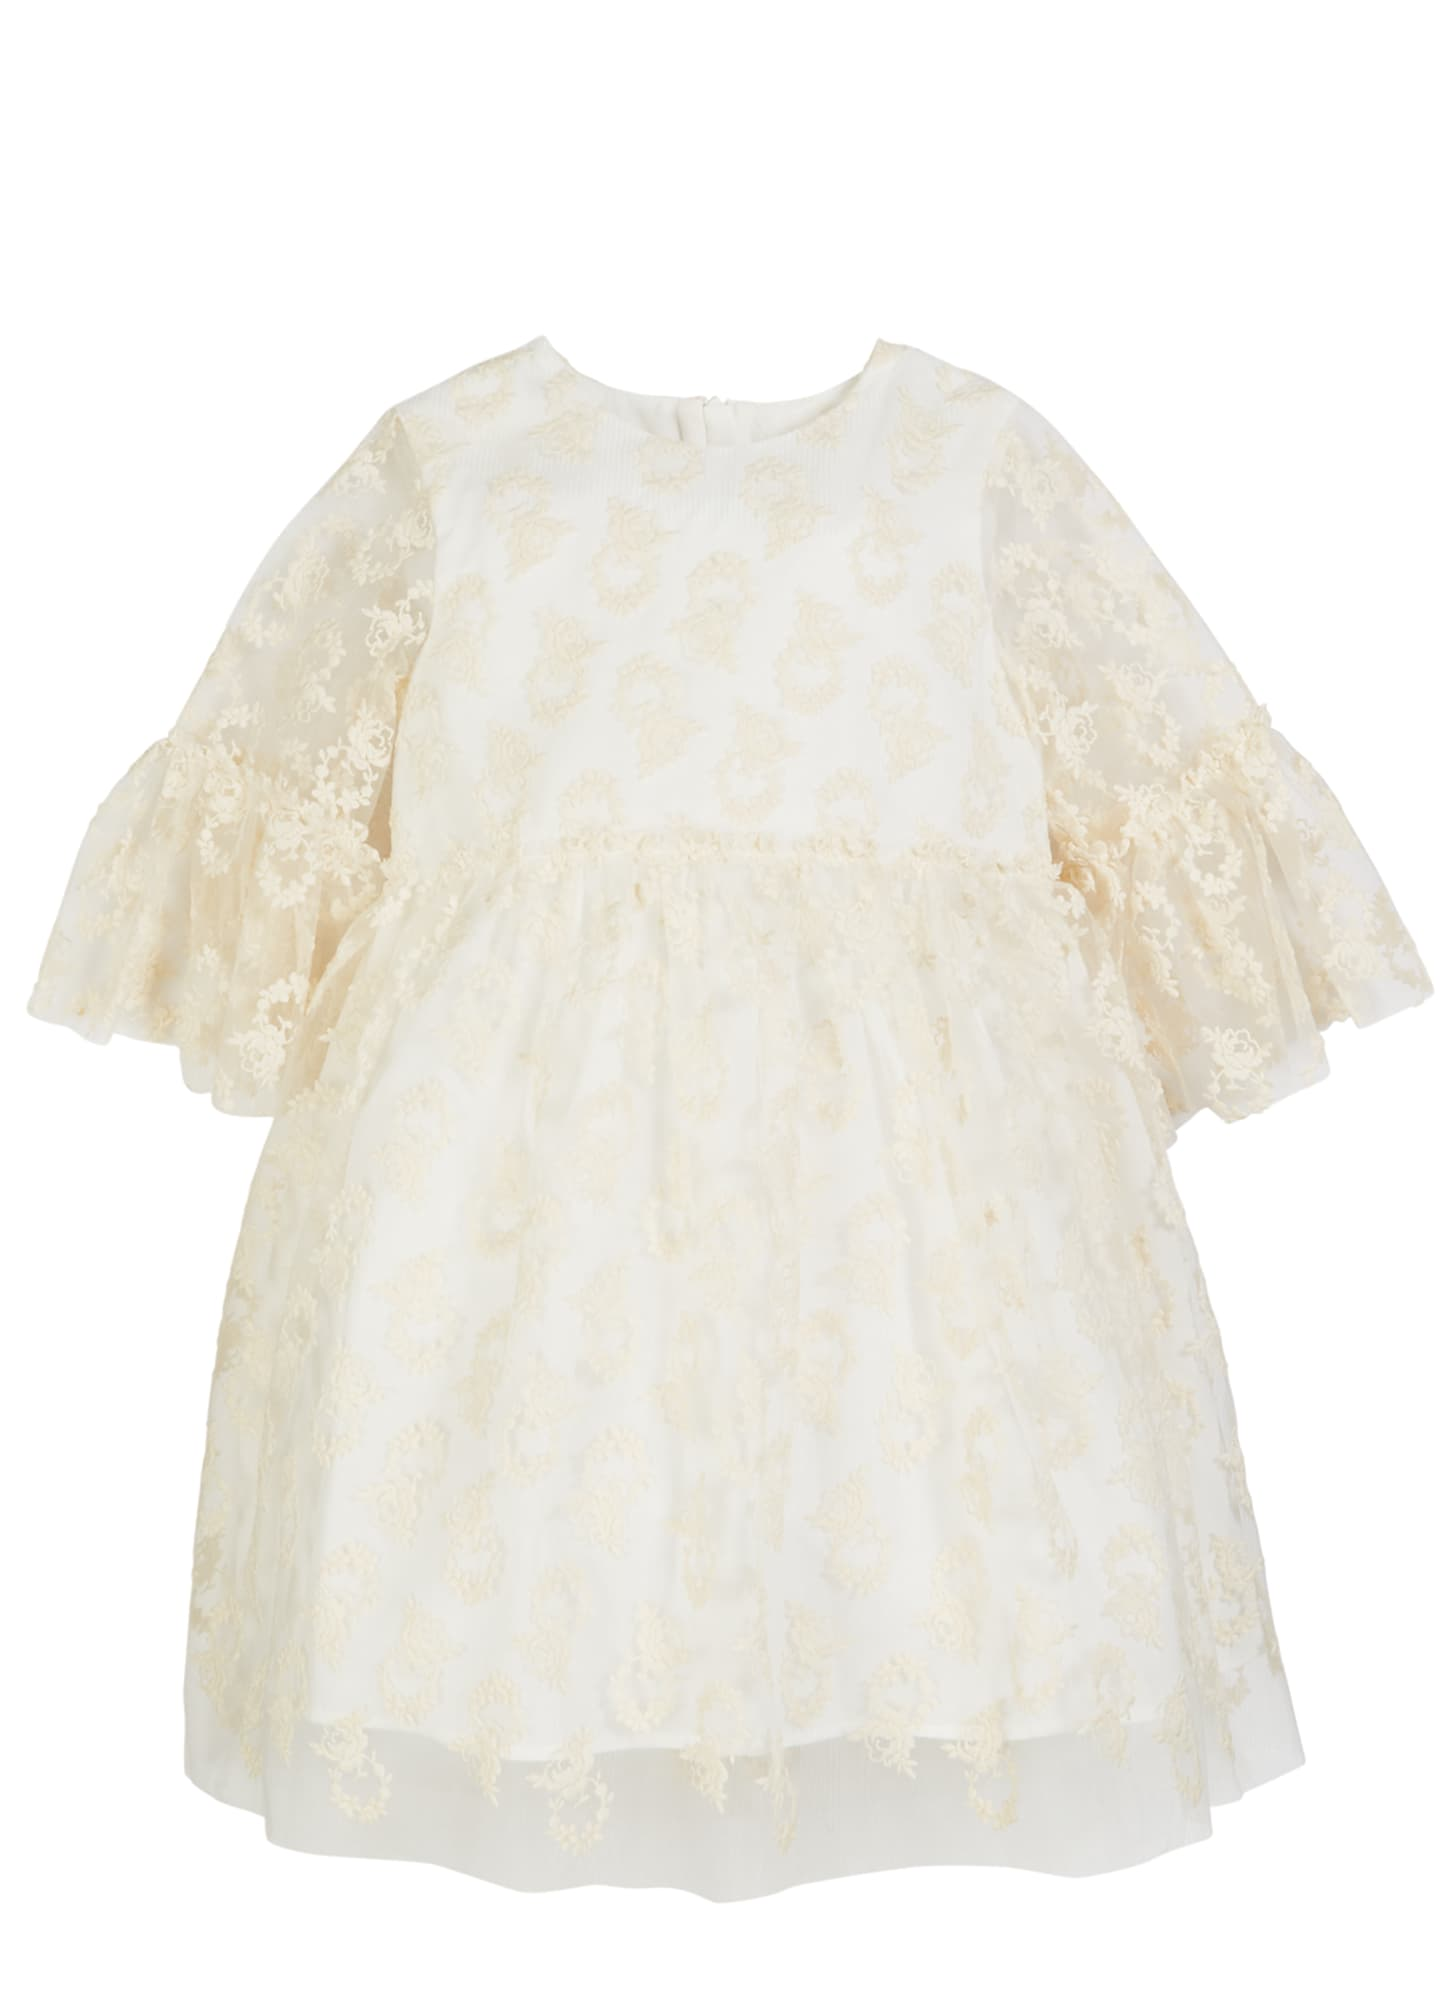 Charabia 3/4-Sleeve Lace Dress, Size 2-4